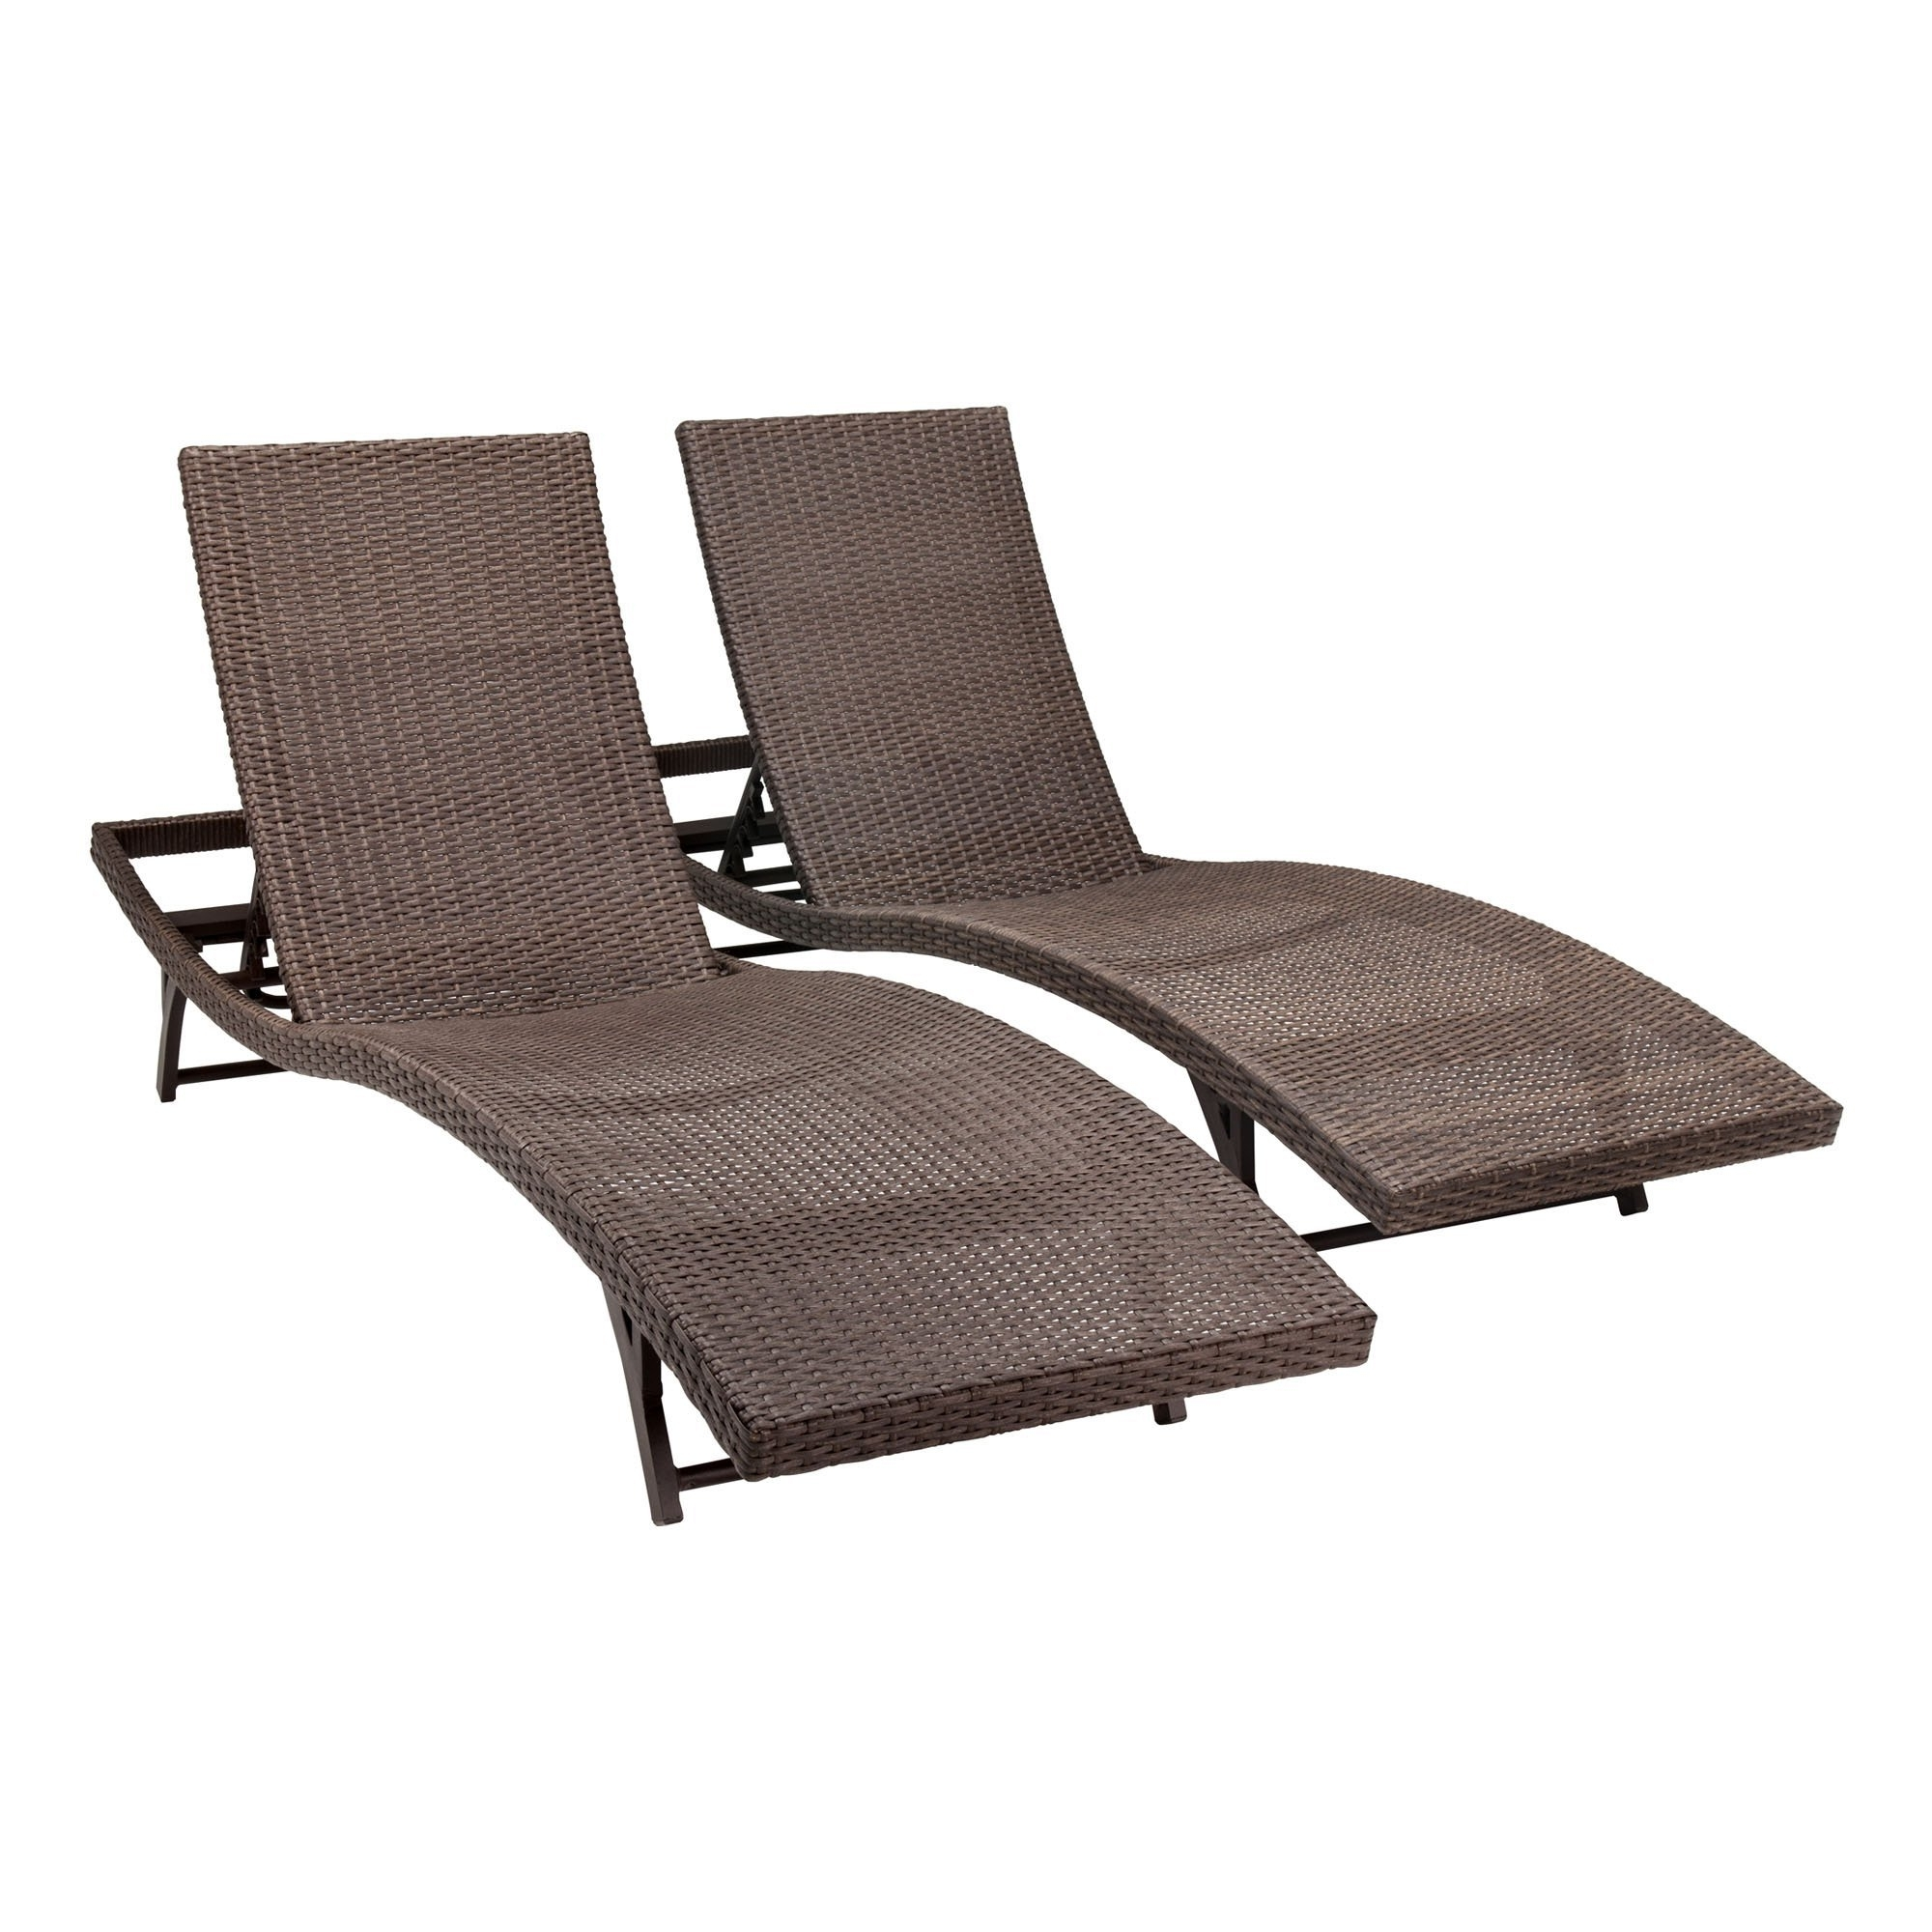 Outdoor Chaise Lounge Chairs Ideas : Best Outdoor Chaise Lounge Pertaining To Famous Metal Chaise Lounge Chairs (View 12 of 15)